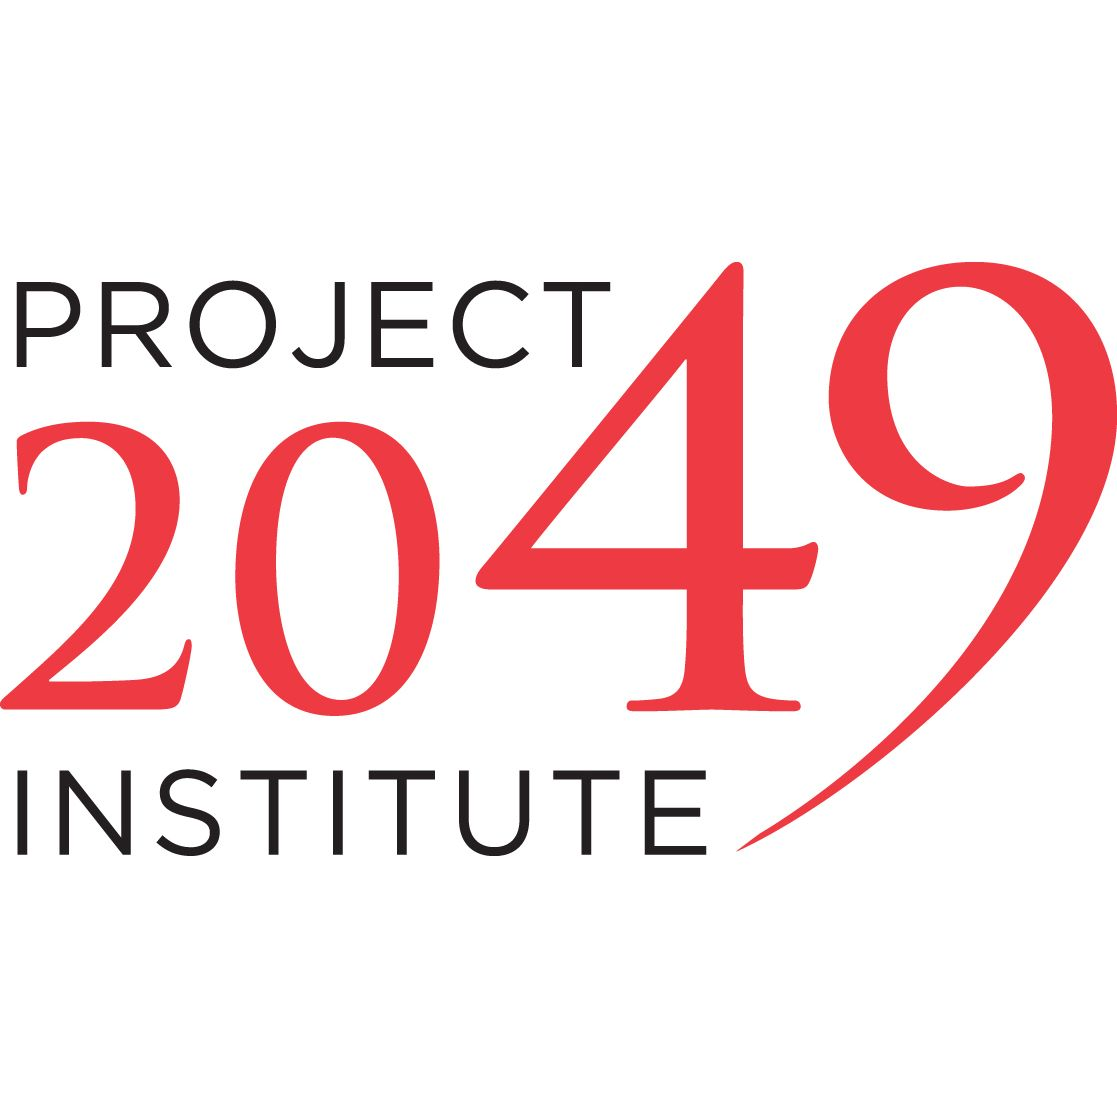 The Project 2049 Institute Logo